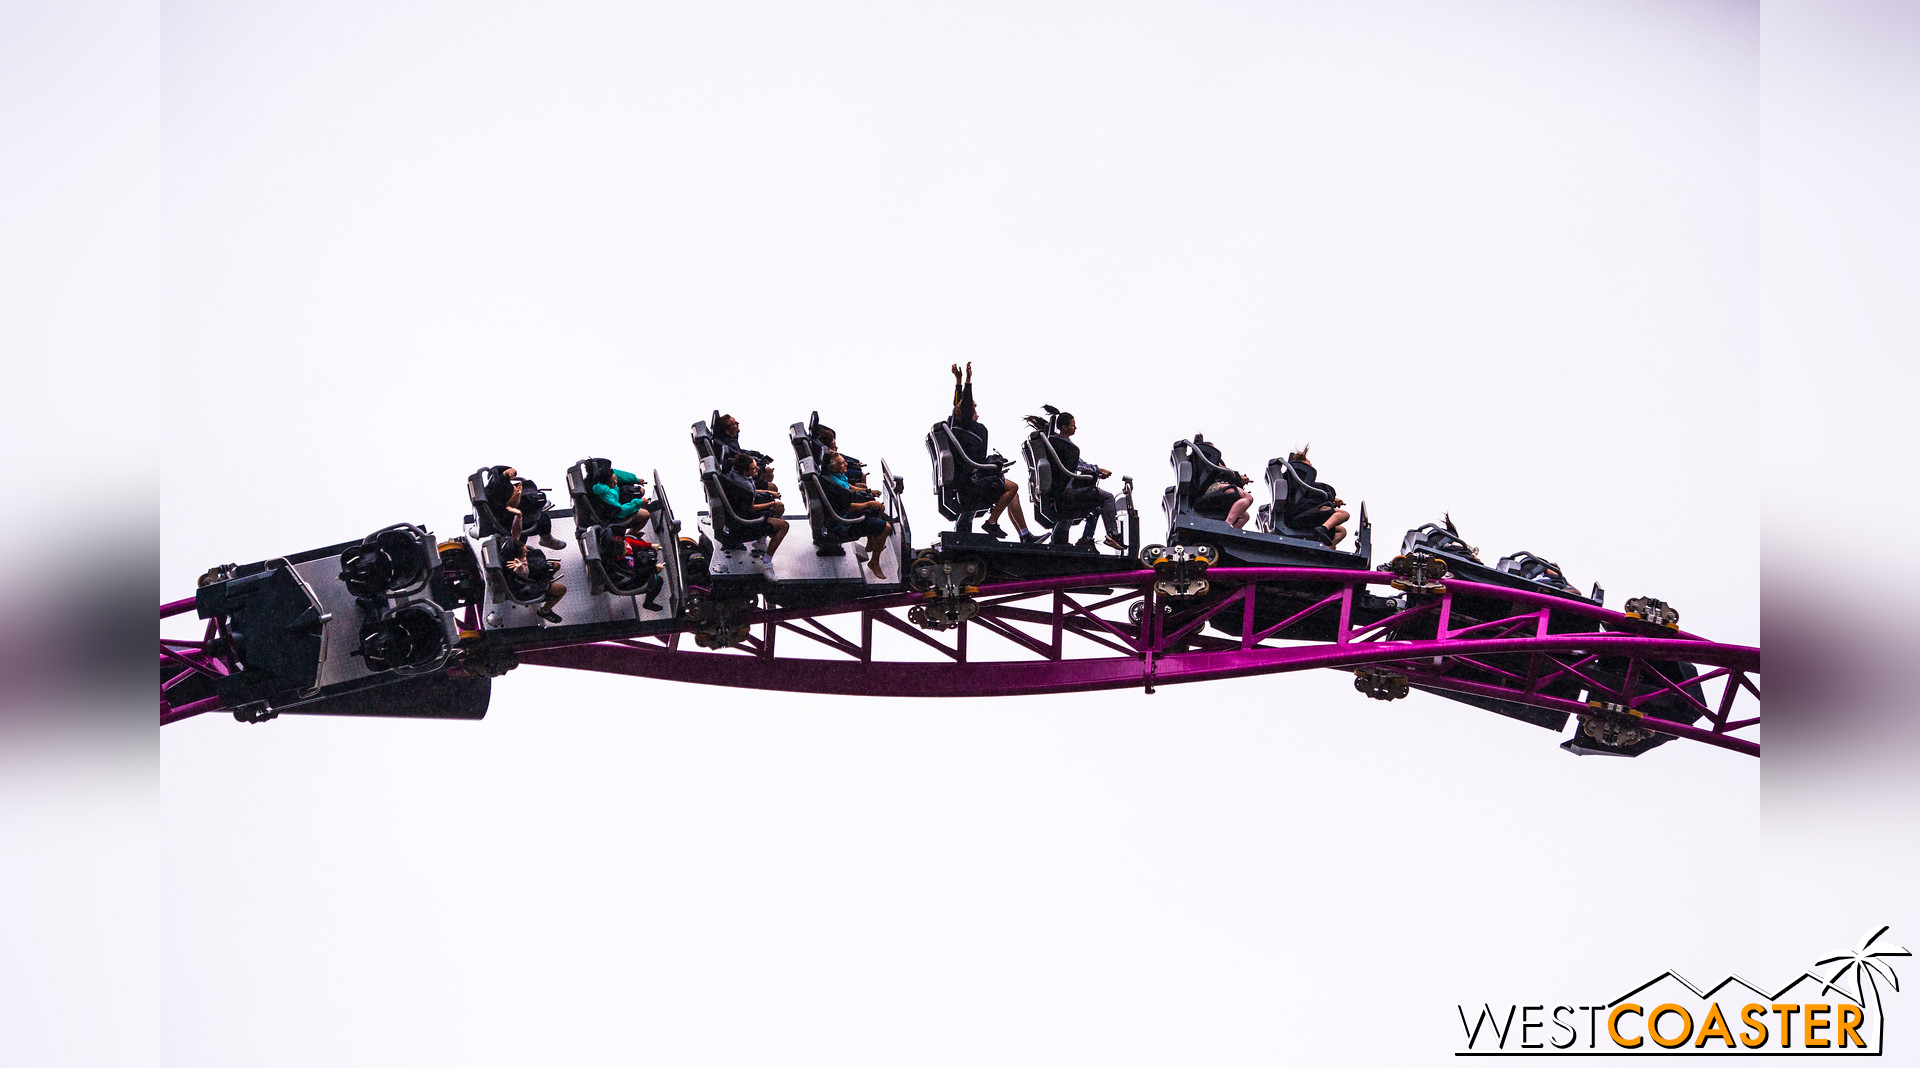 The roller coaster also features an non-inverted loop.